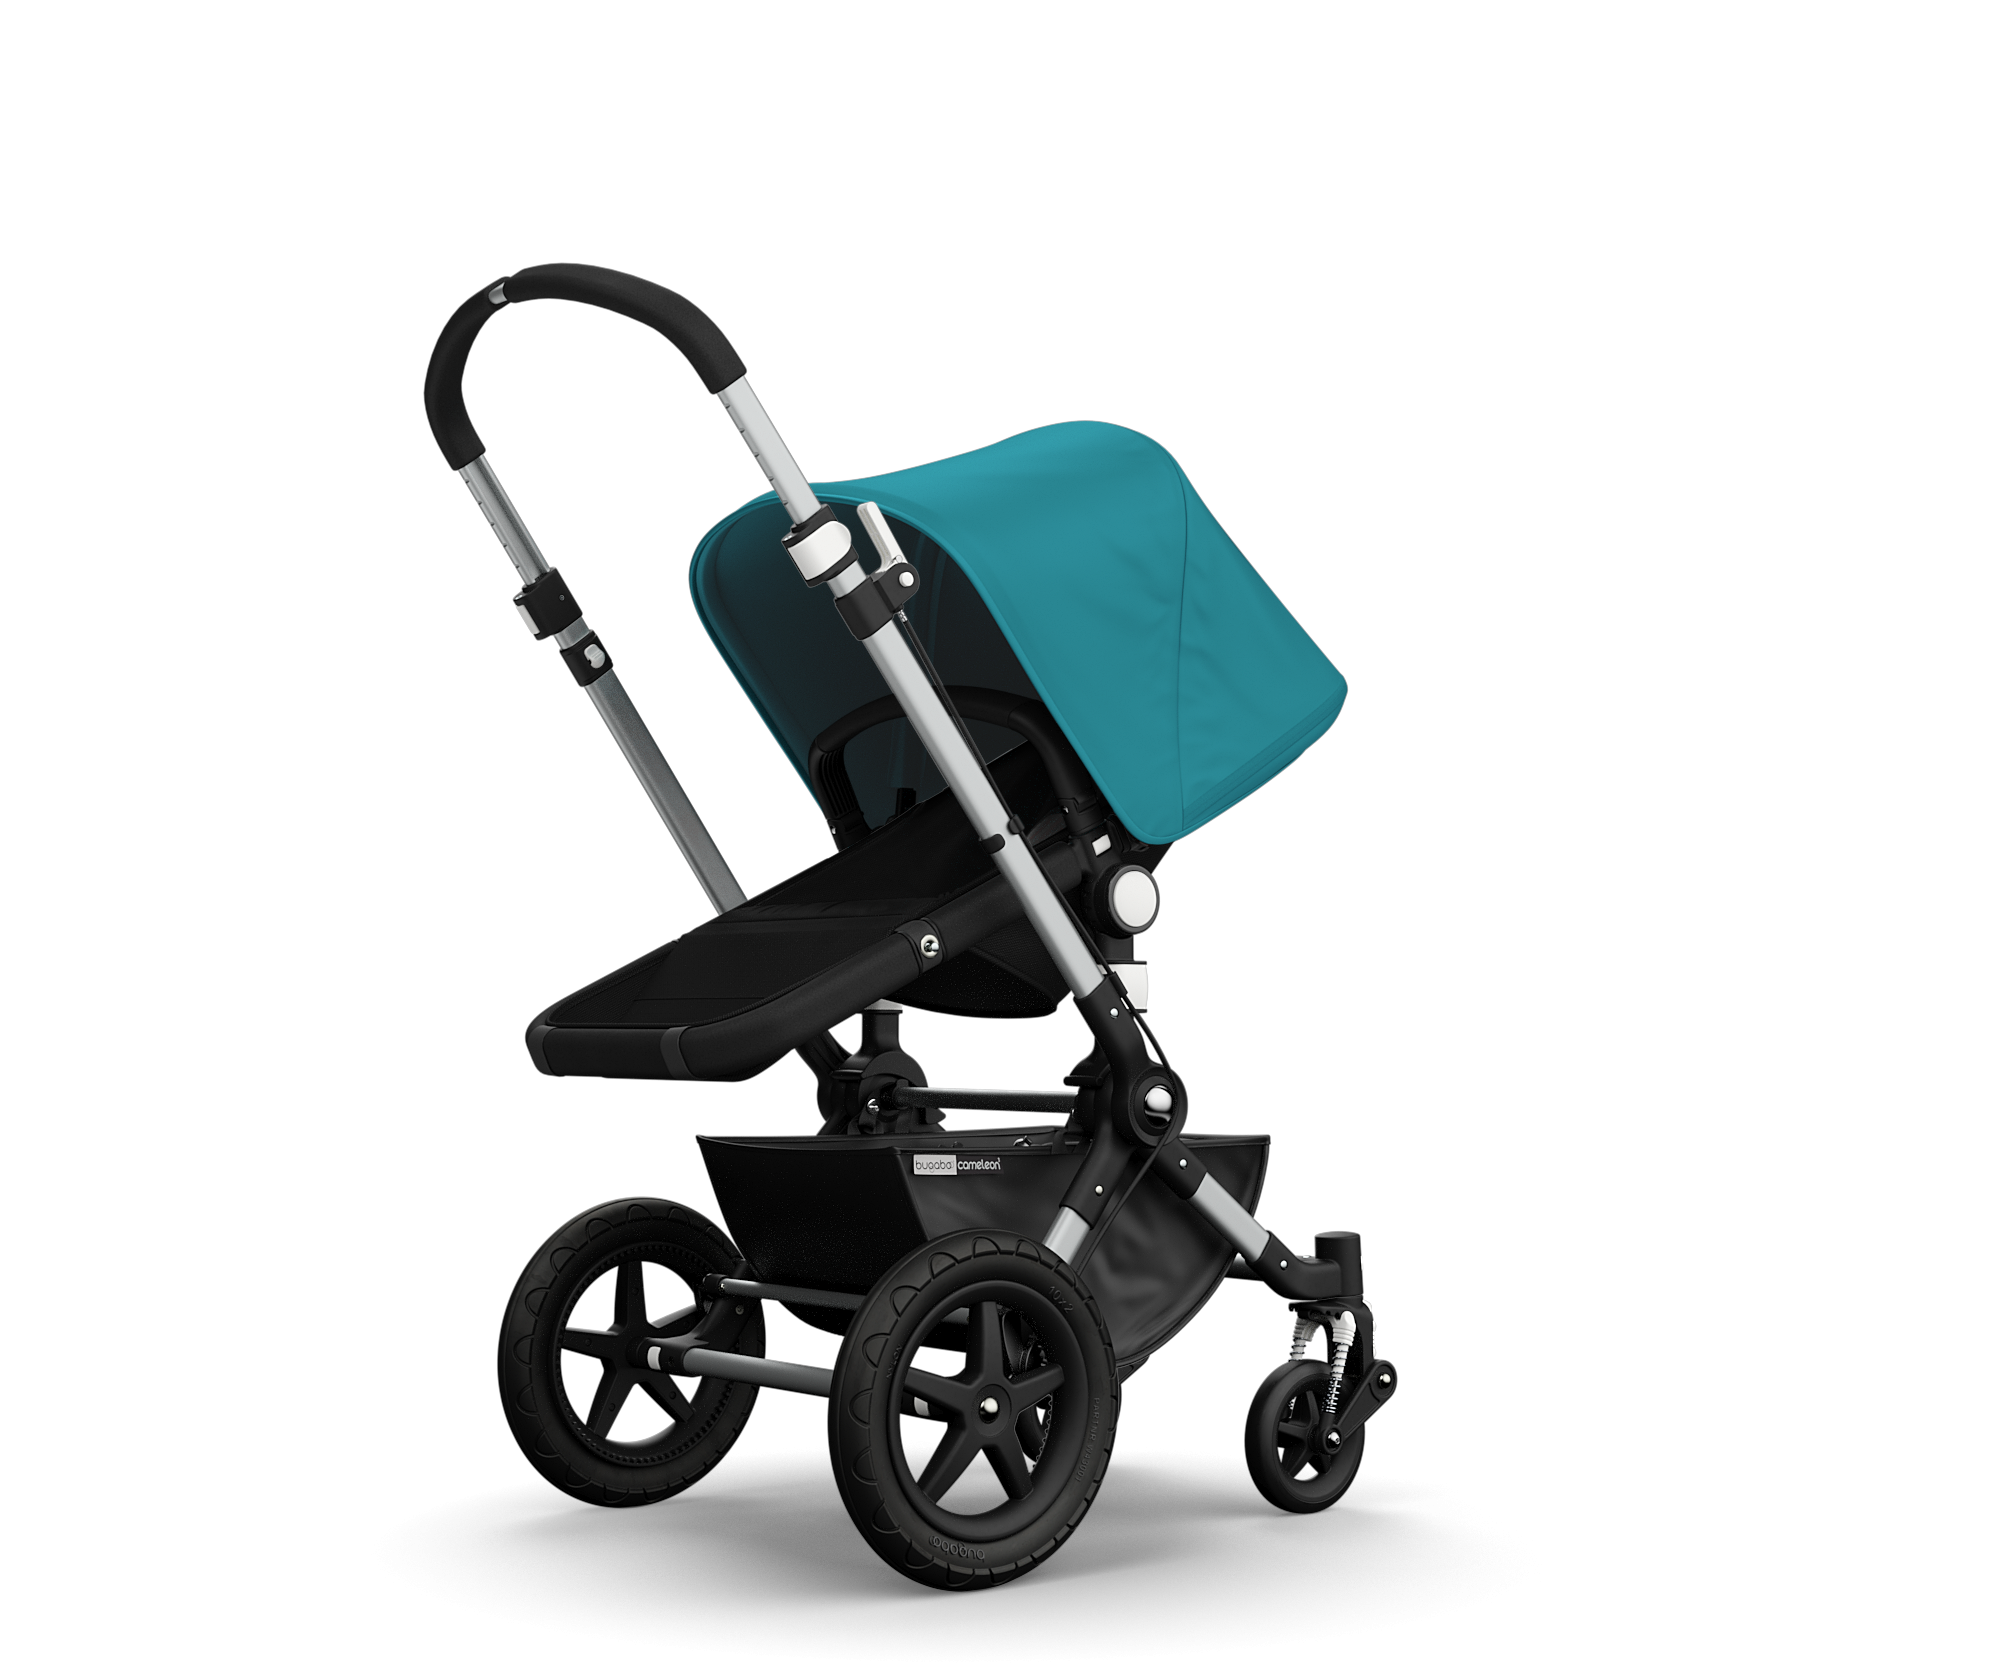 bugaboo cameleon 3 im test 2017 bilder videos preise babyplaces. Black Bedroom Furniture Sets. Home Design Ideas